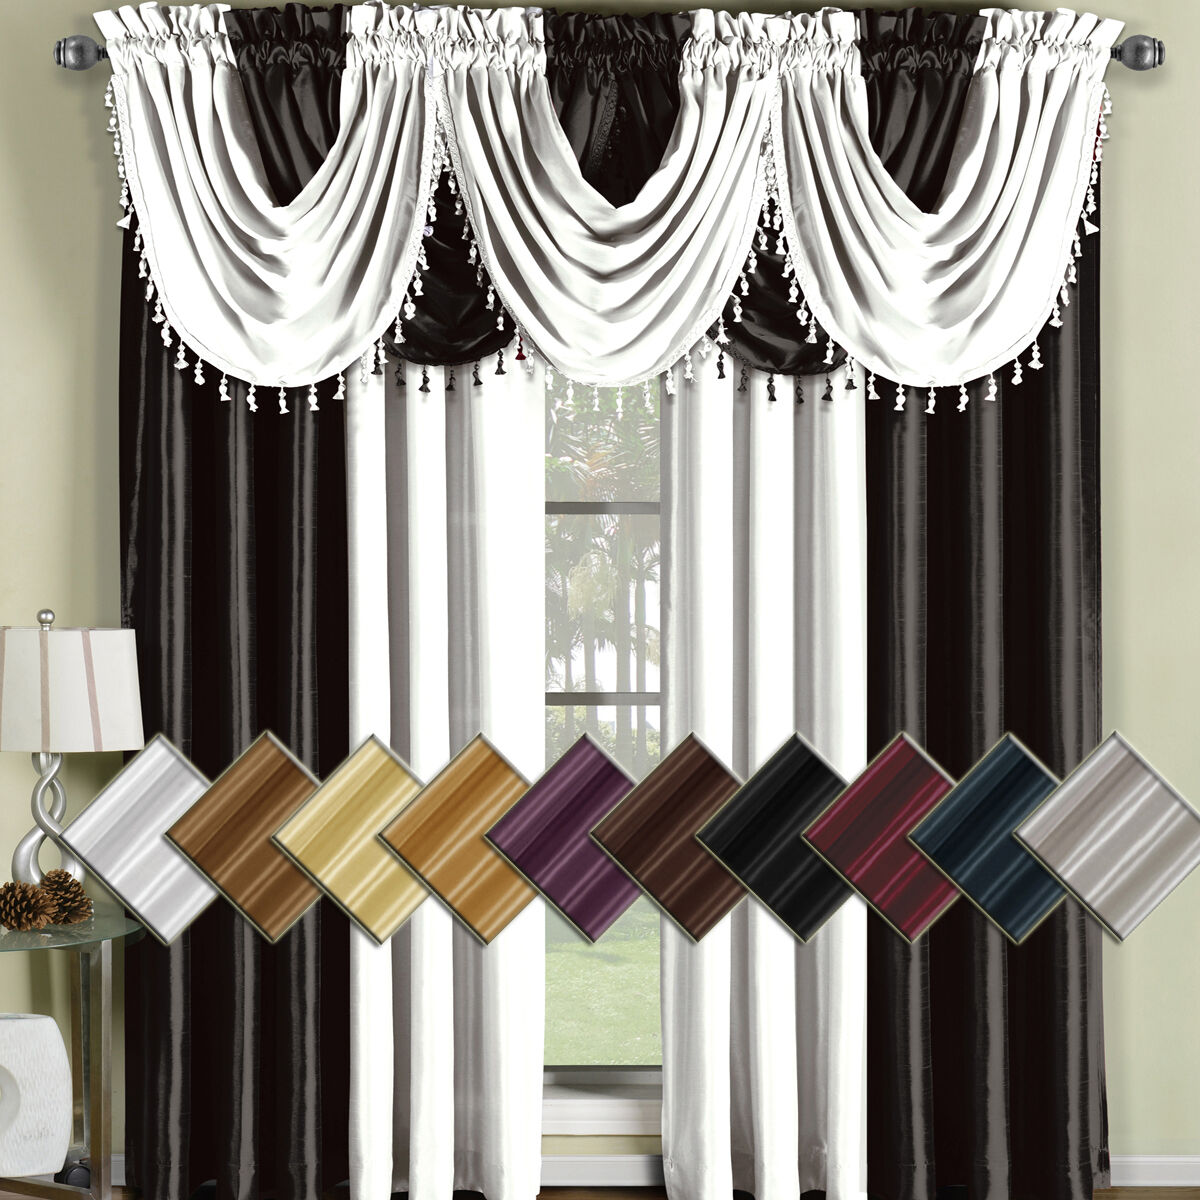 Soho Rod Faux Silk Waterfall Window Treatment Includes 4